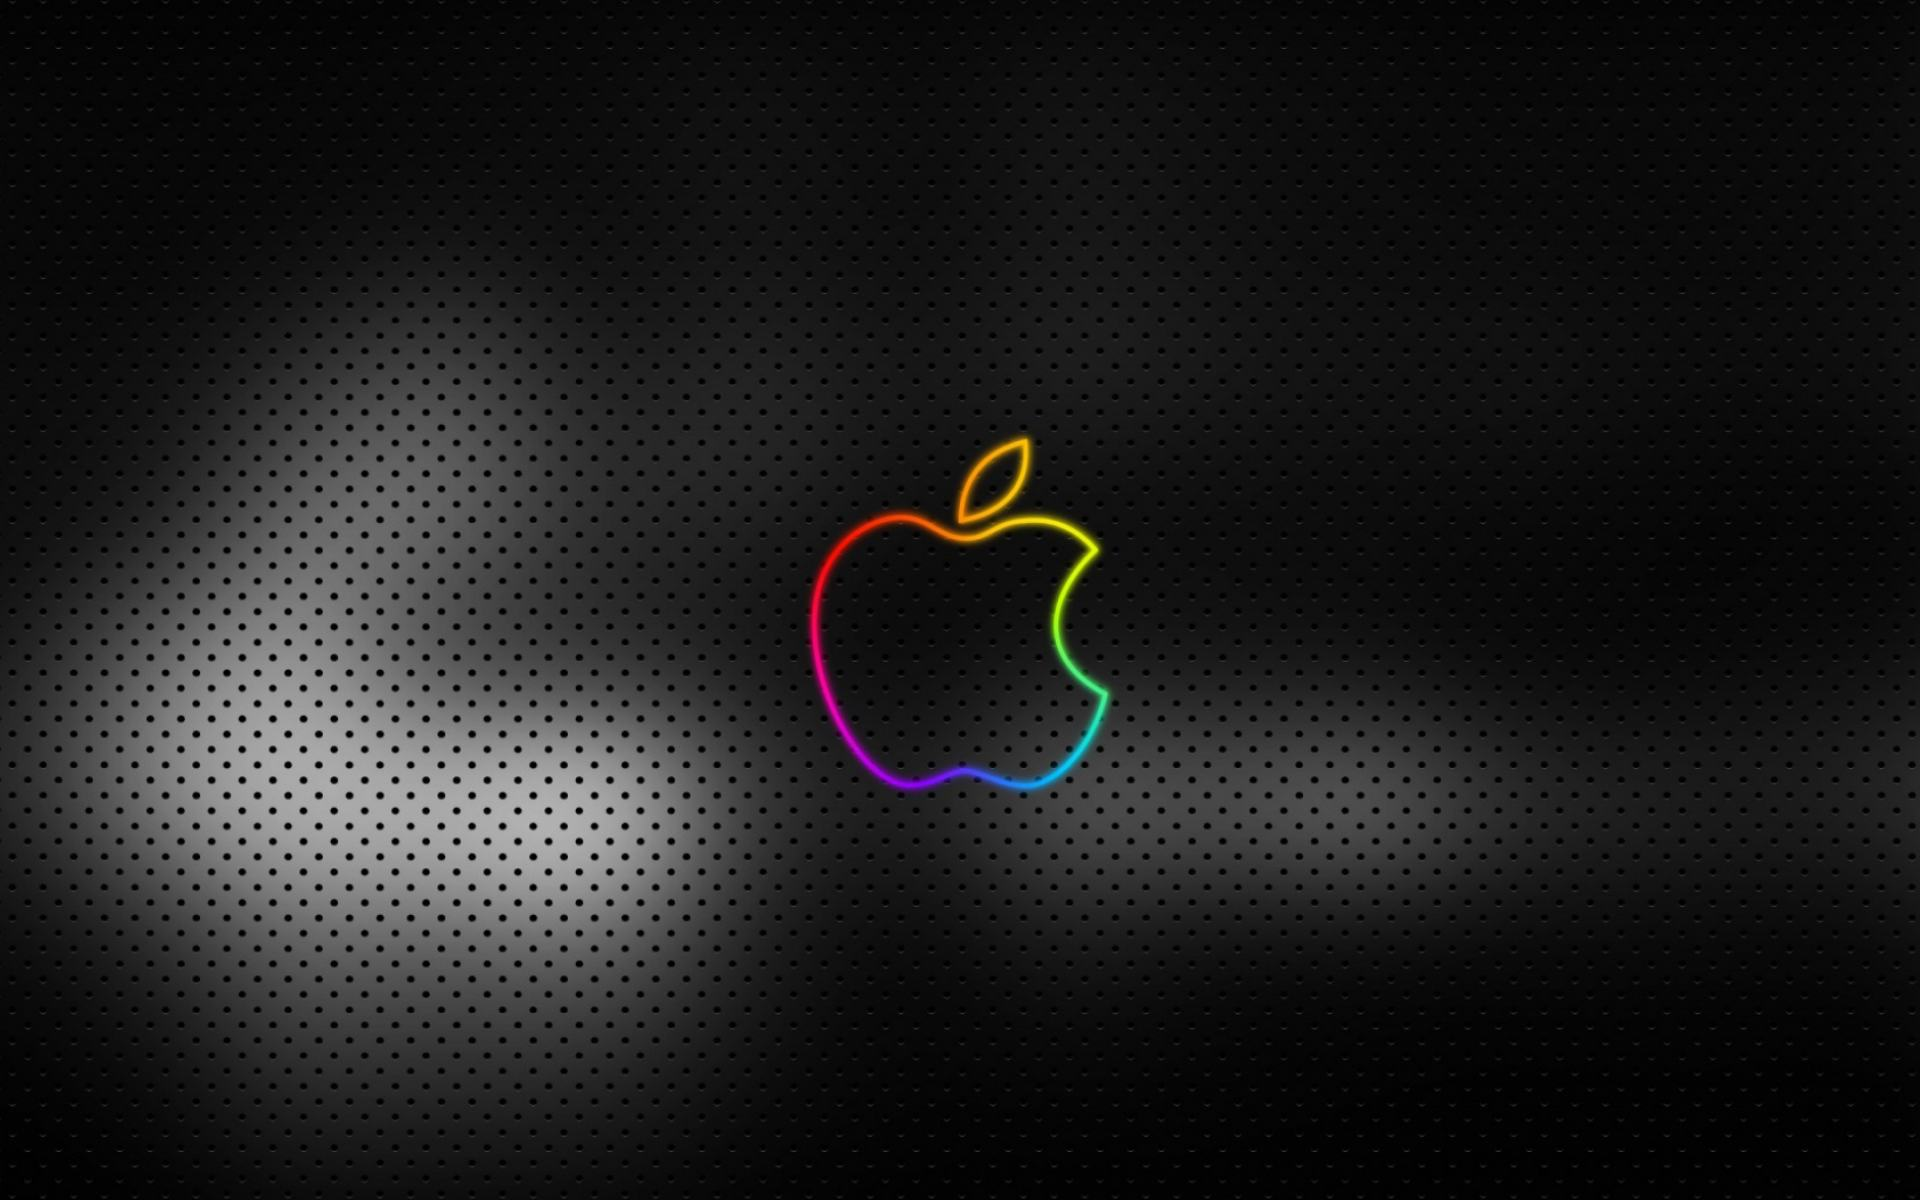 Обои Apple Retro 1920x1200